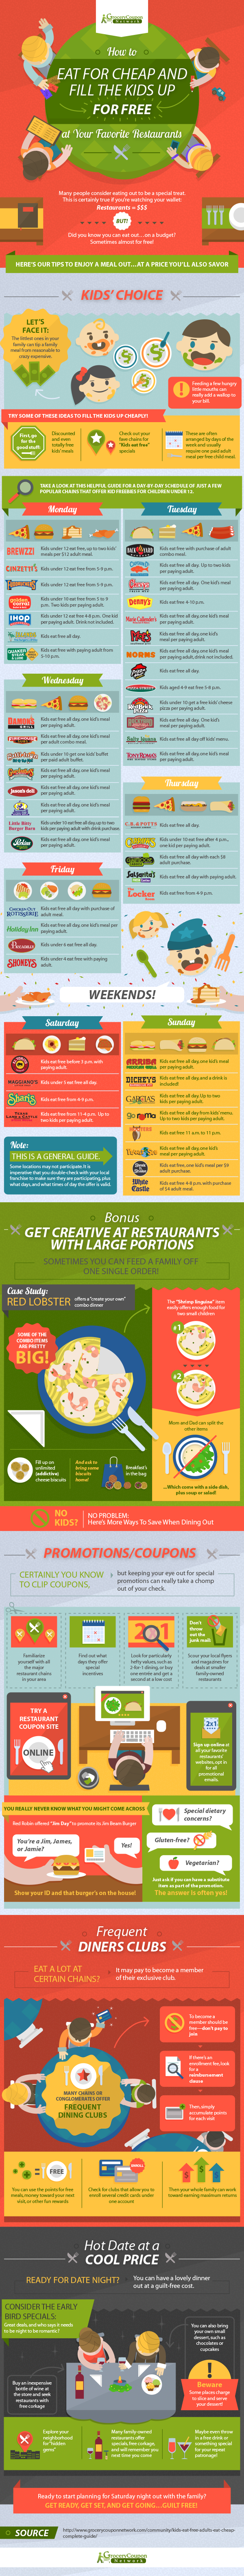 Complete Guide to Kids Eating Free at Your Favorite Restaurants